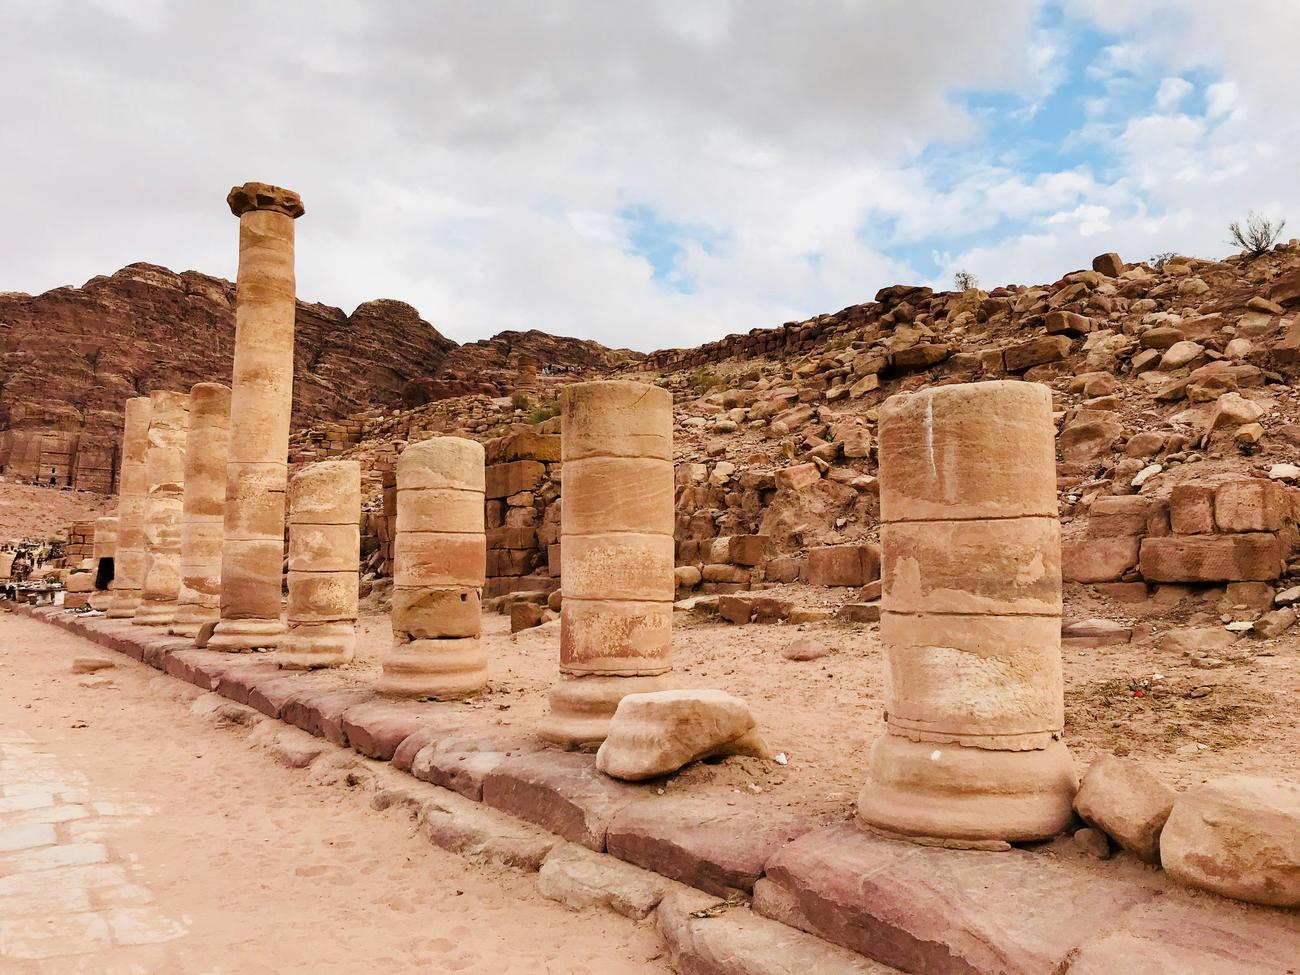 Other things to see in Petra